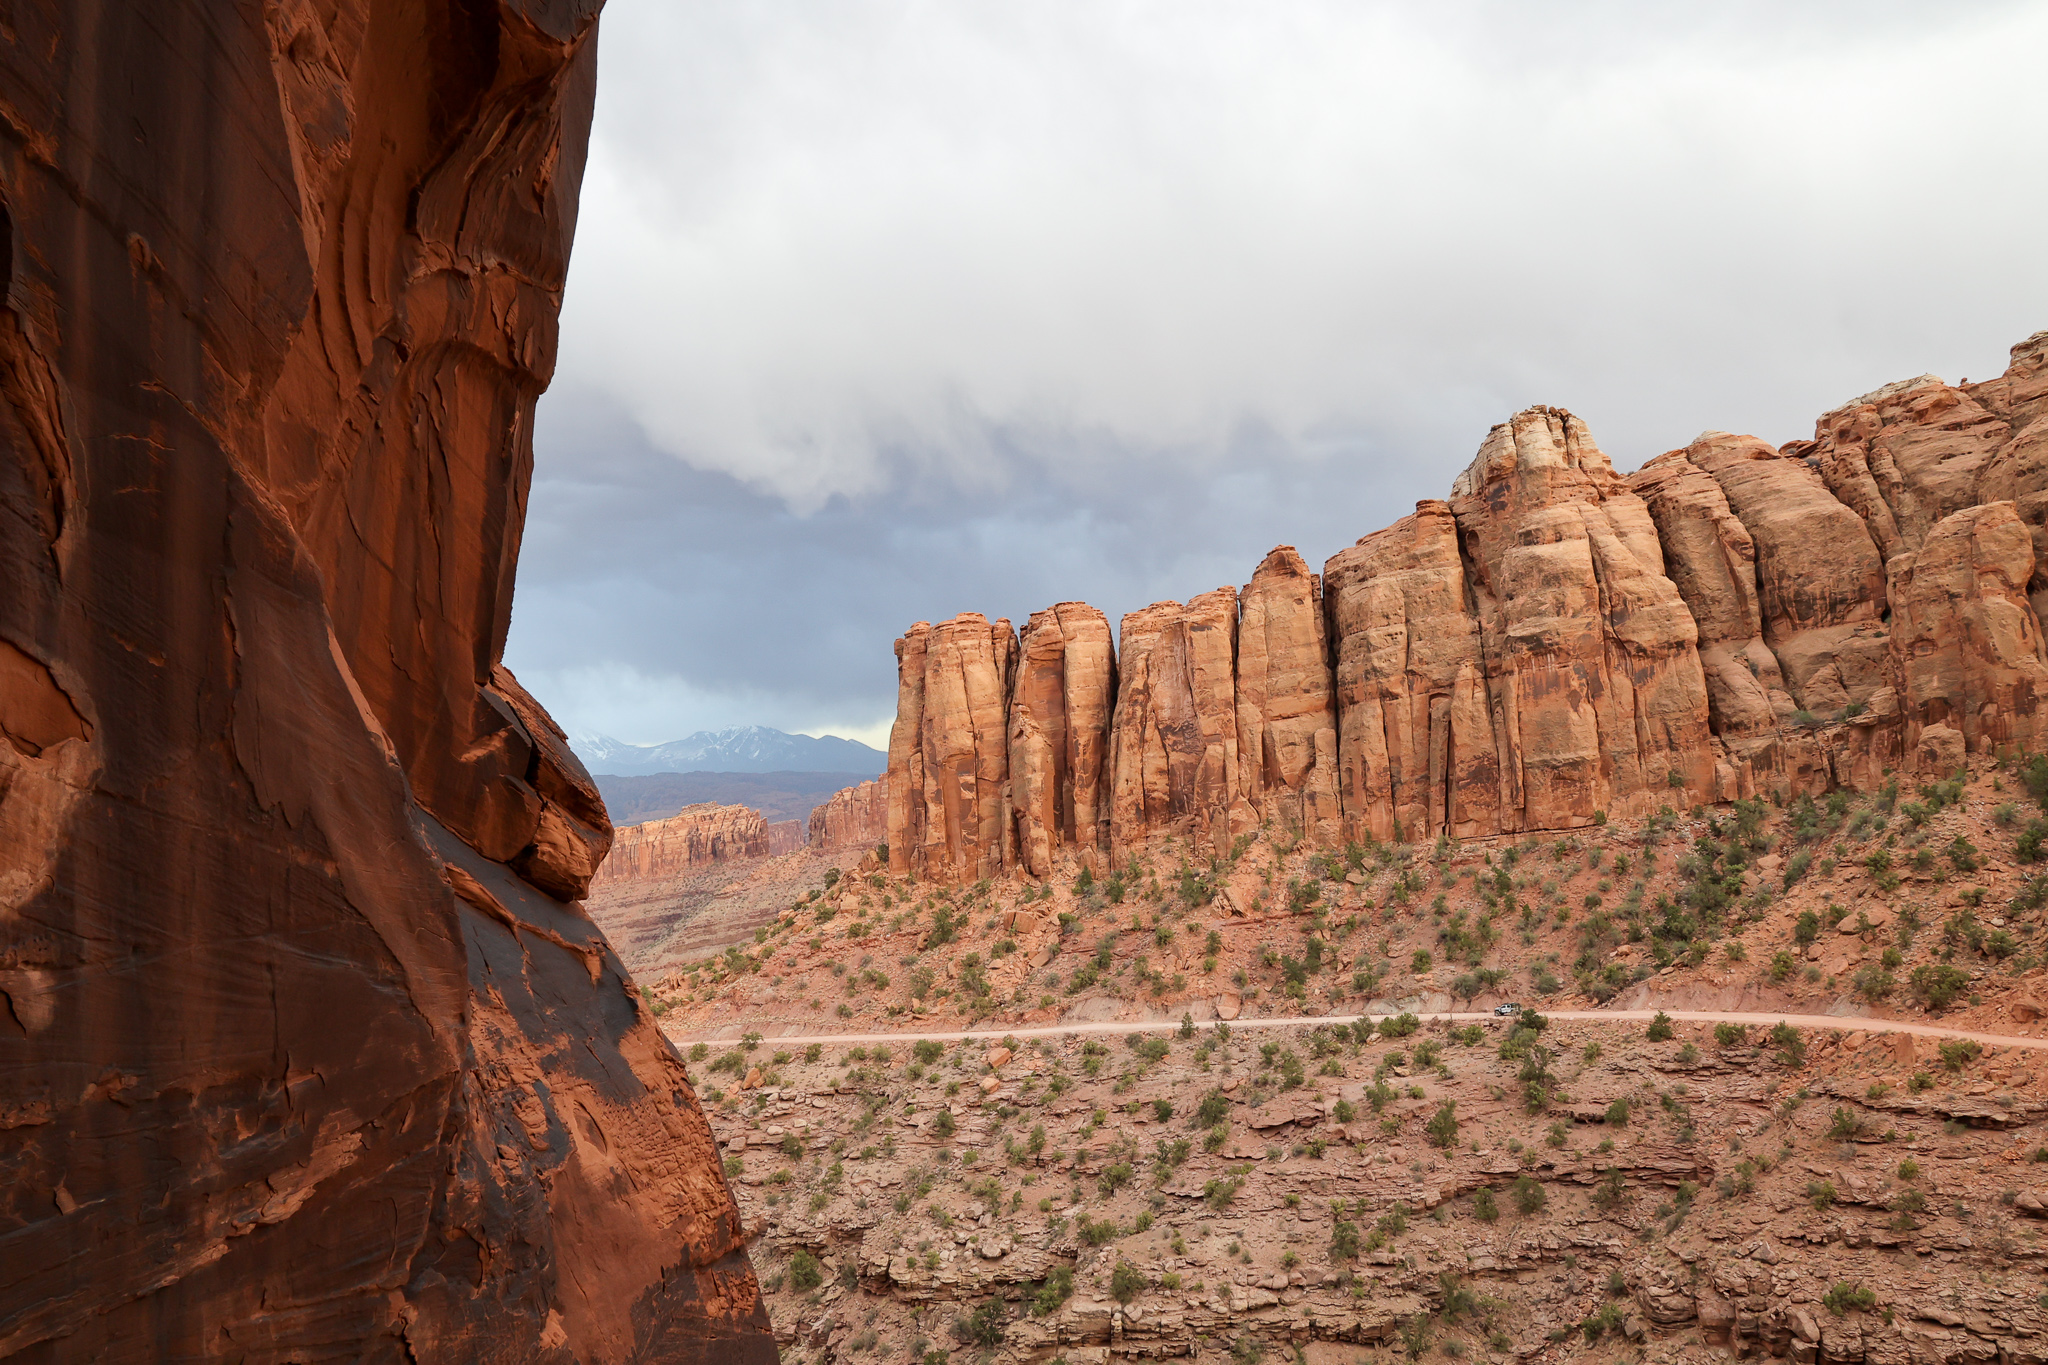 Beginner Mountain Biking Trails in Moab